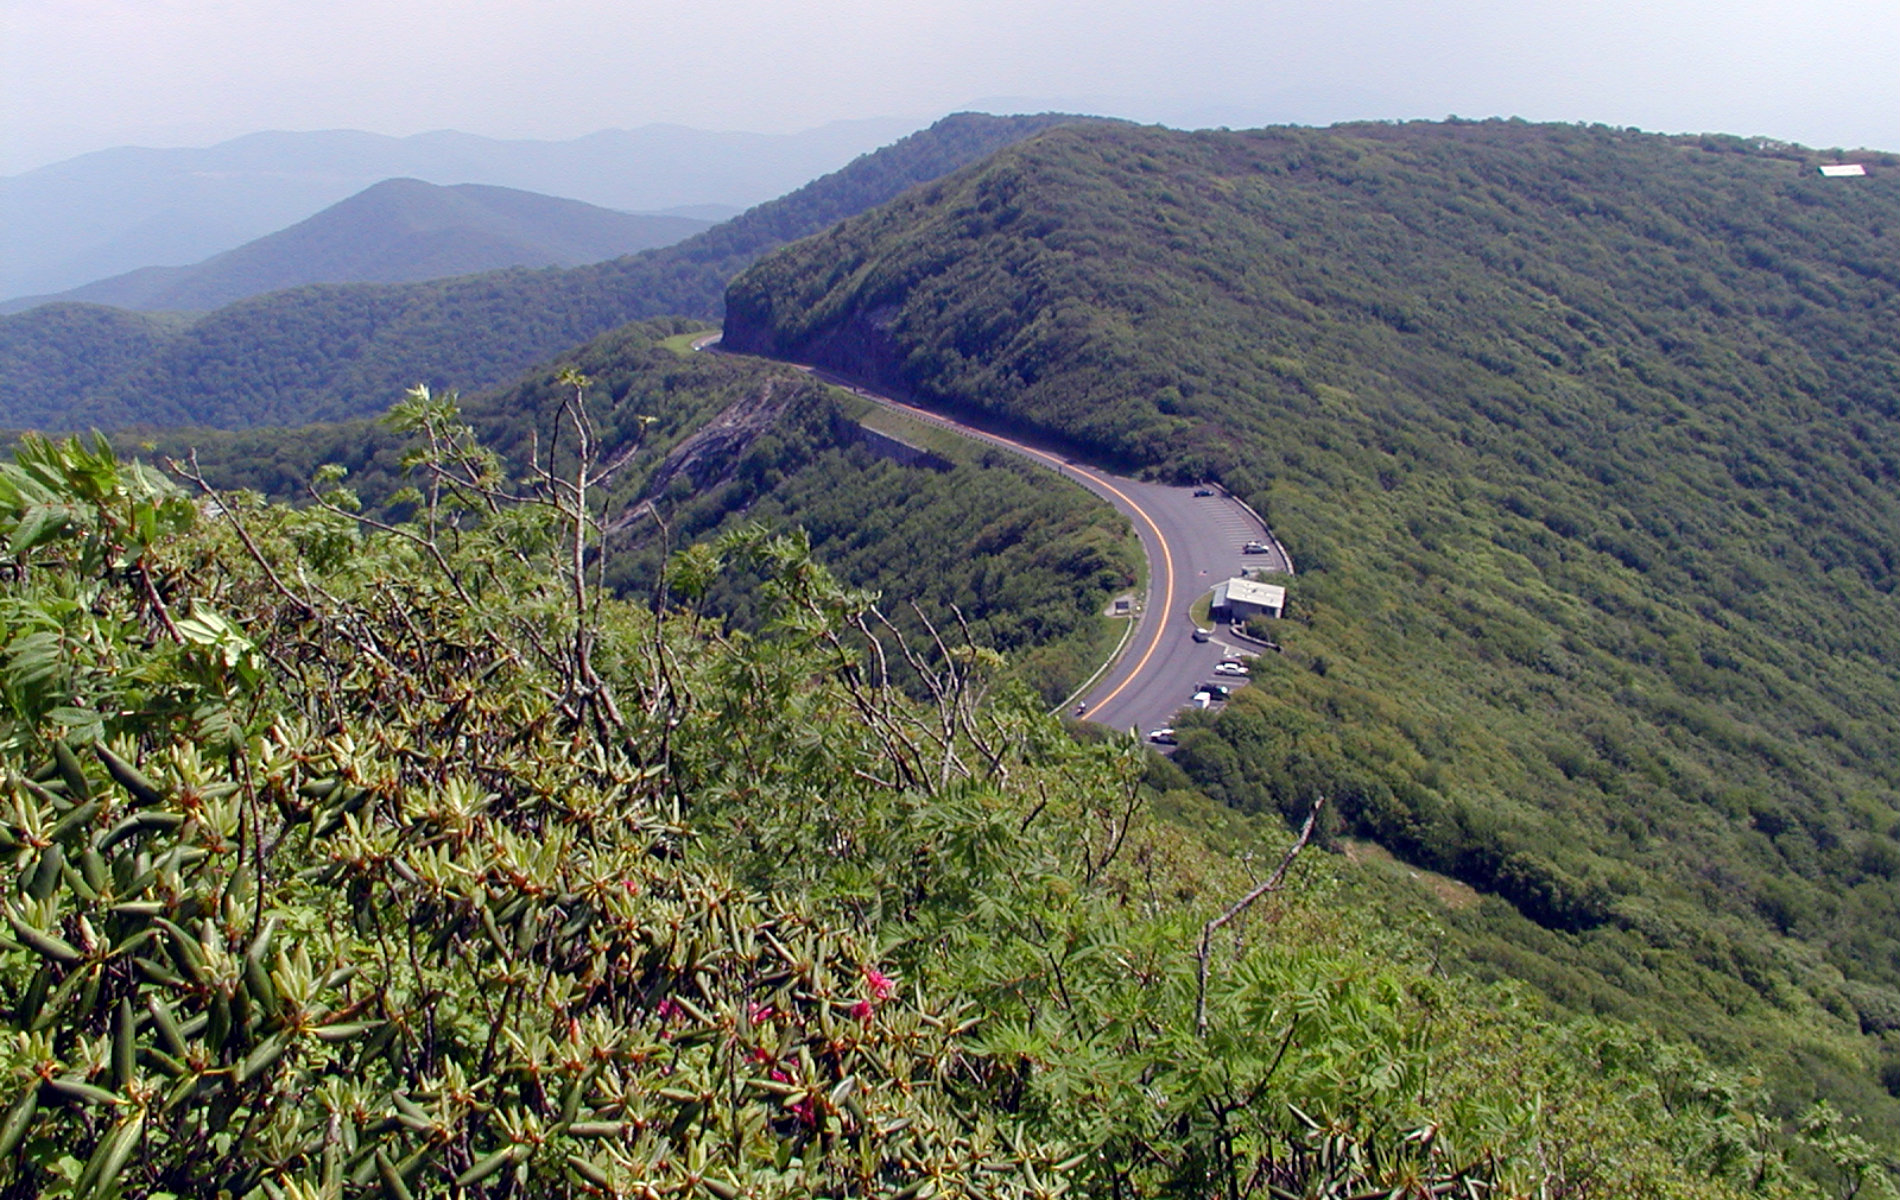 Road curving through tree-filled mountain ridges